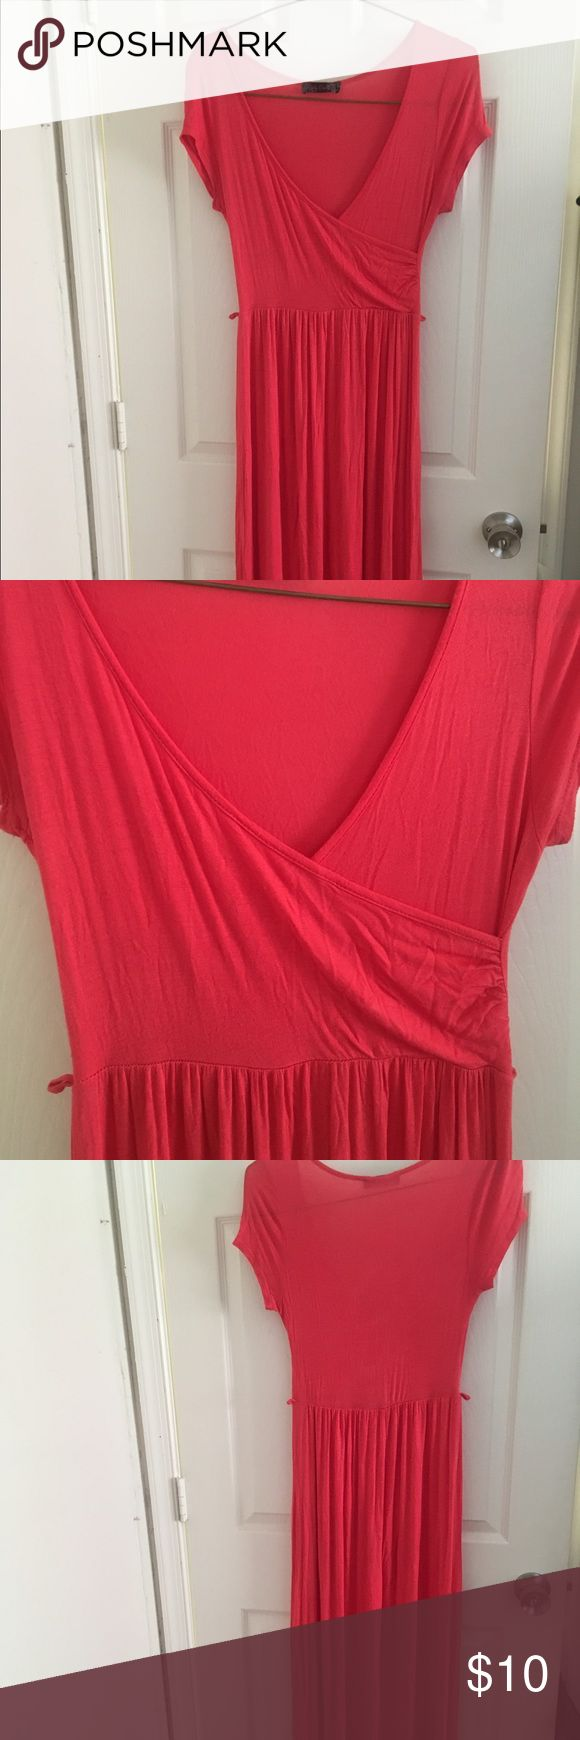 Body Central Maxi Dress Super cute coral colored maxi dress! Lightweight for the summer or paired with a cute sweater for the fall. Cotton/polyester blend. Body Central Dresses Maxi